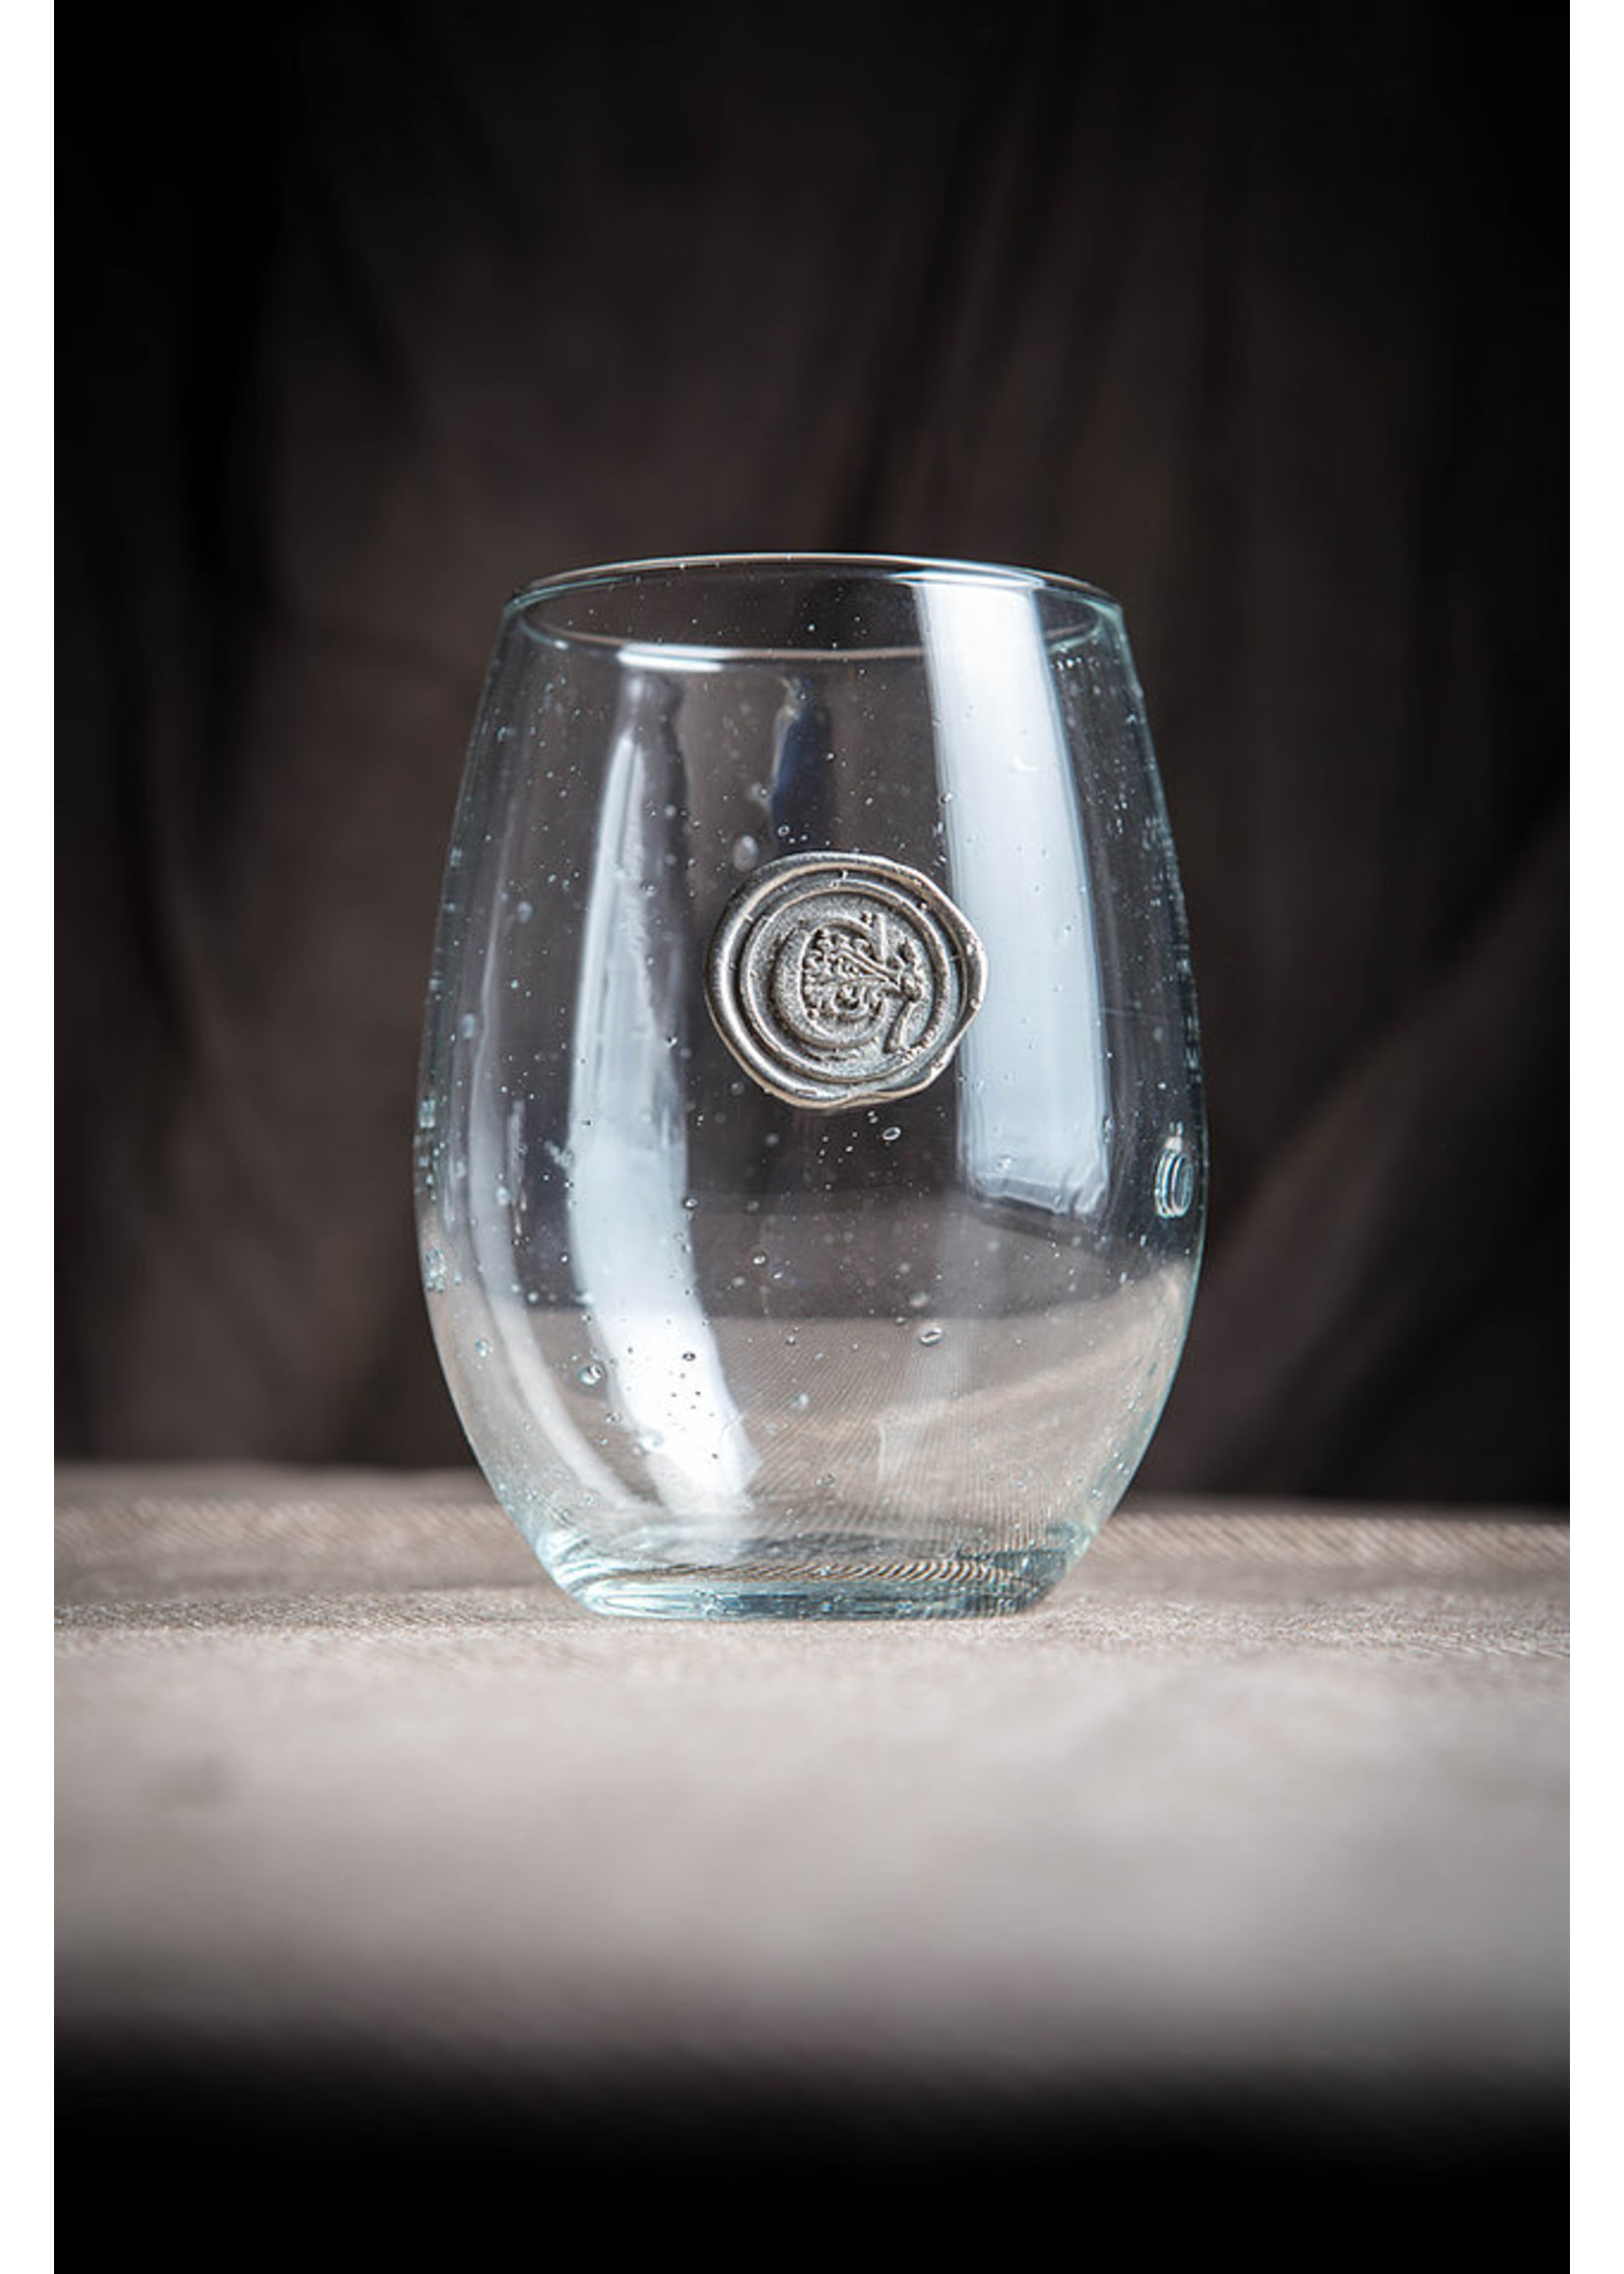 southern jubliee Southern Jubilee Stemless Wine Glass